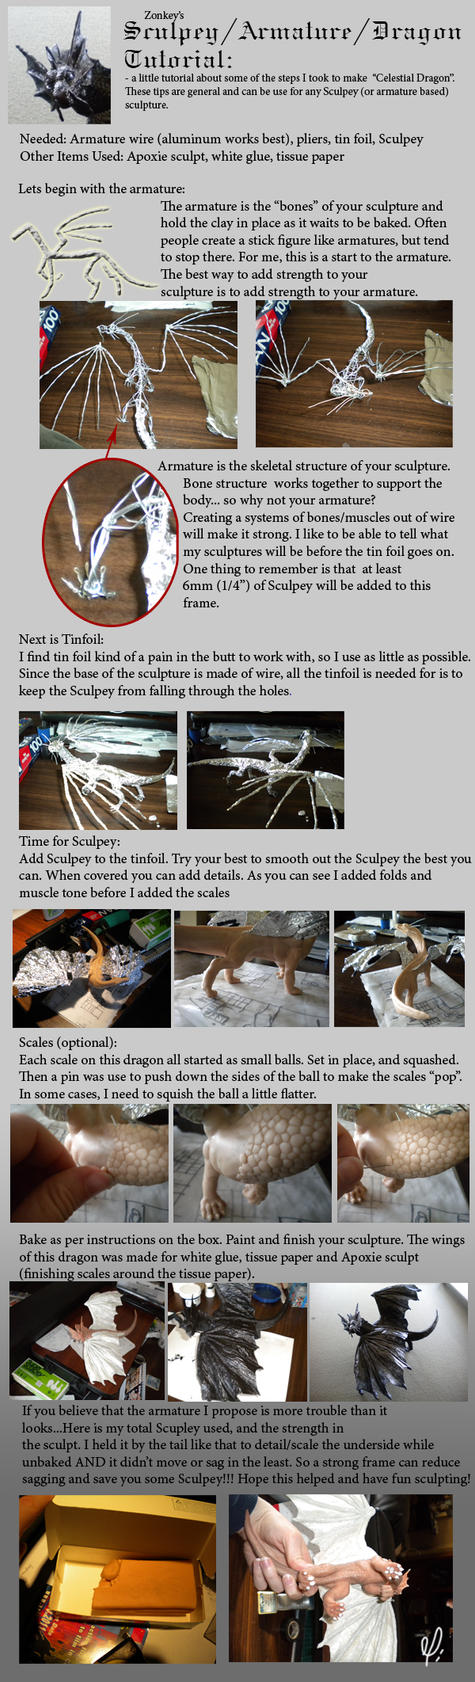 Sculpey Tutorial by zonkey